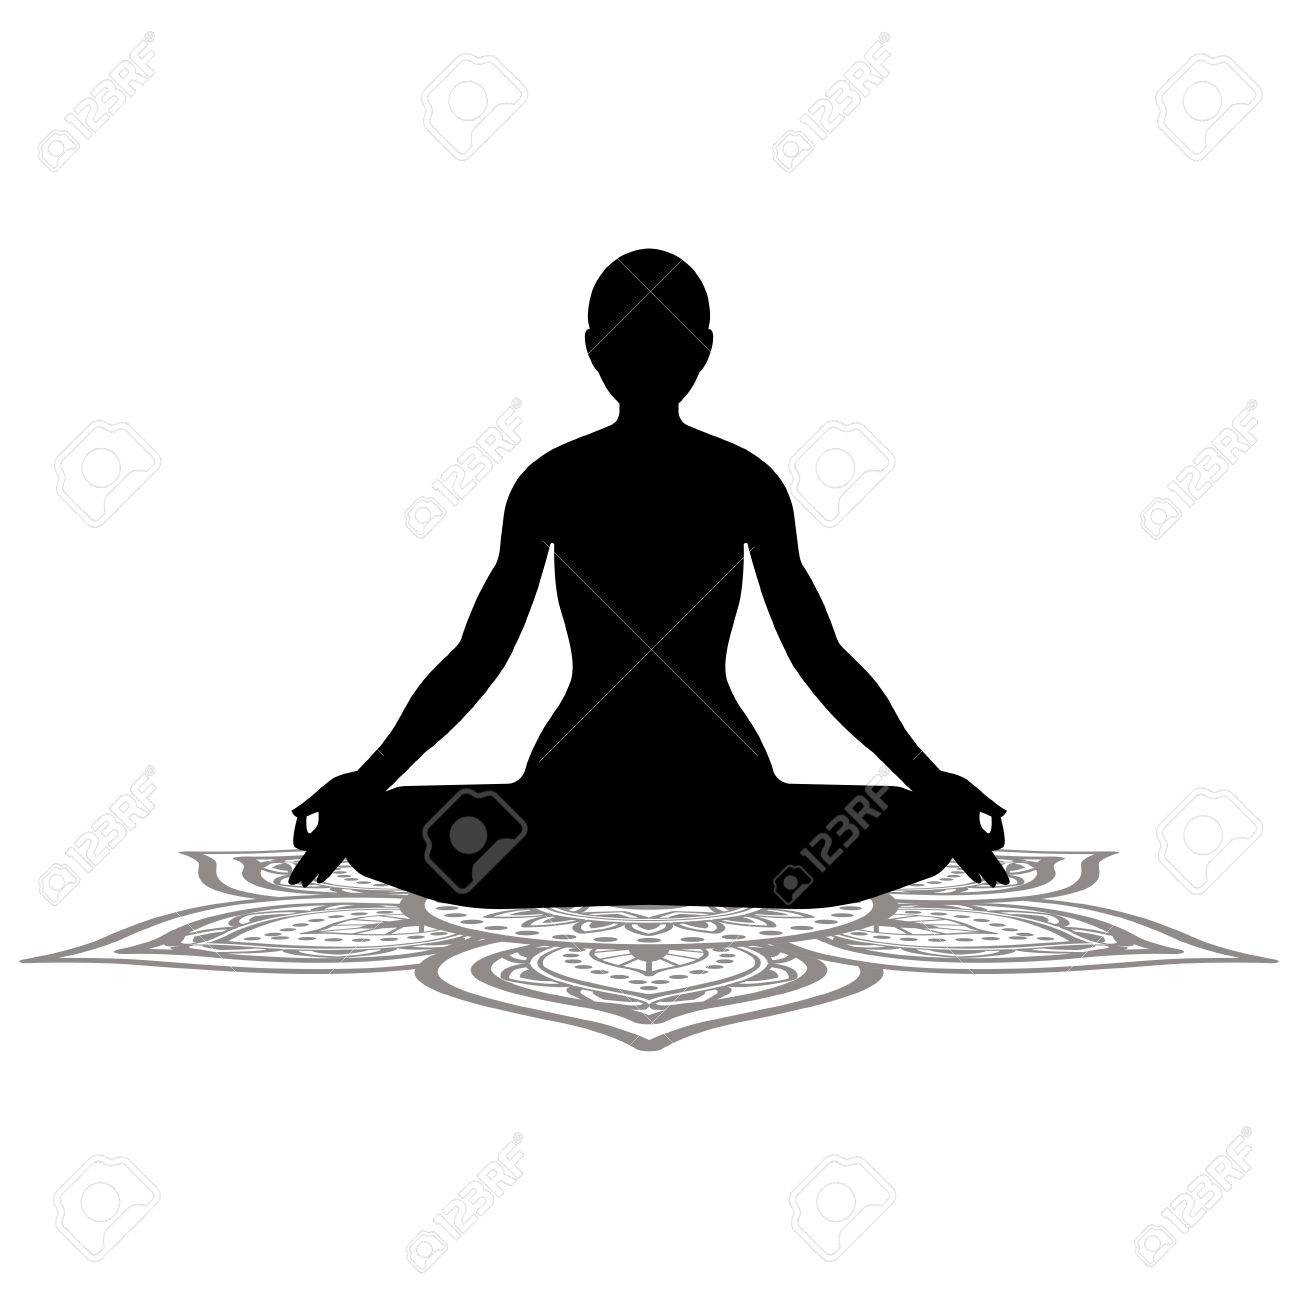 Serenity And Yoga Practicing Meditation Royalty Free Cliparts Vectors And Stock Illustration Image 83230704